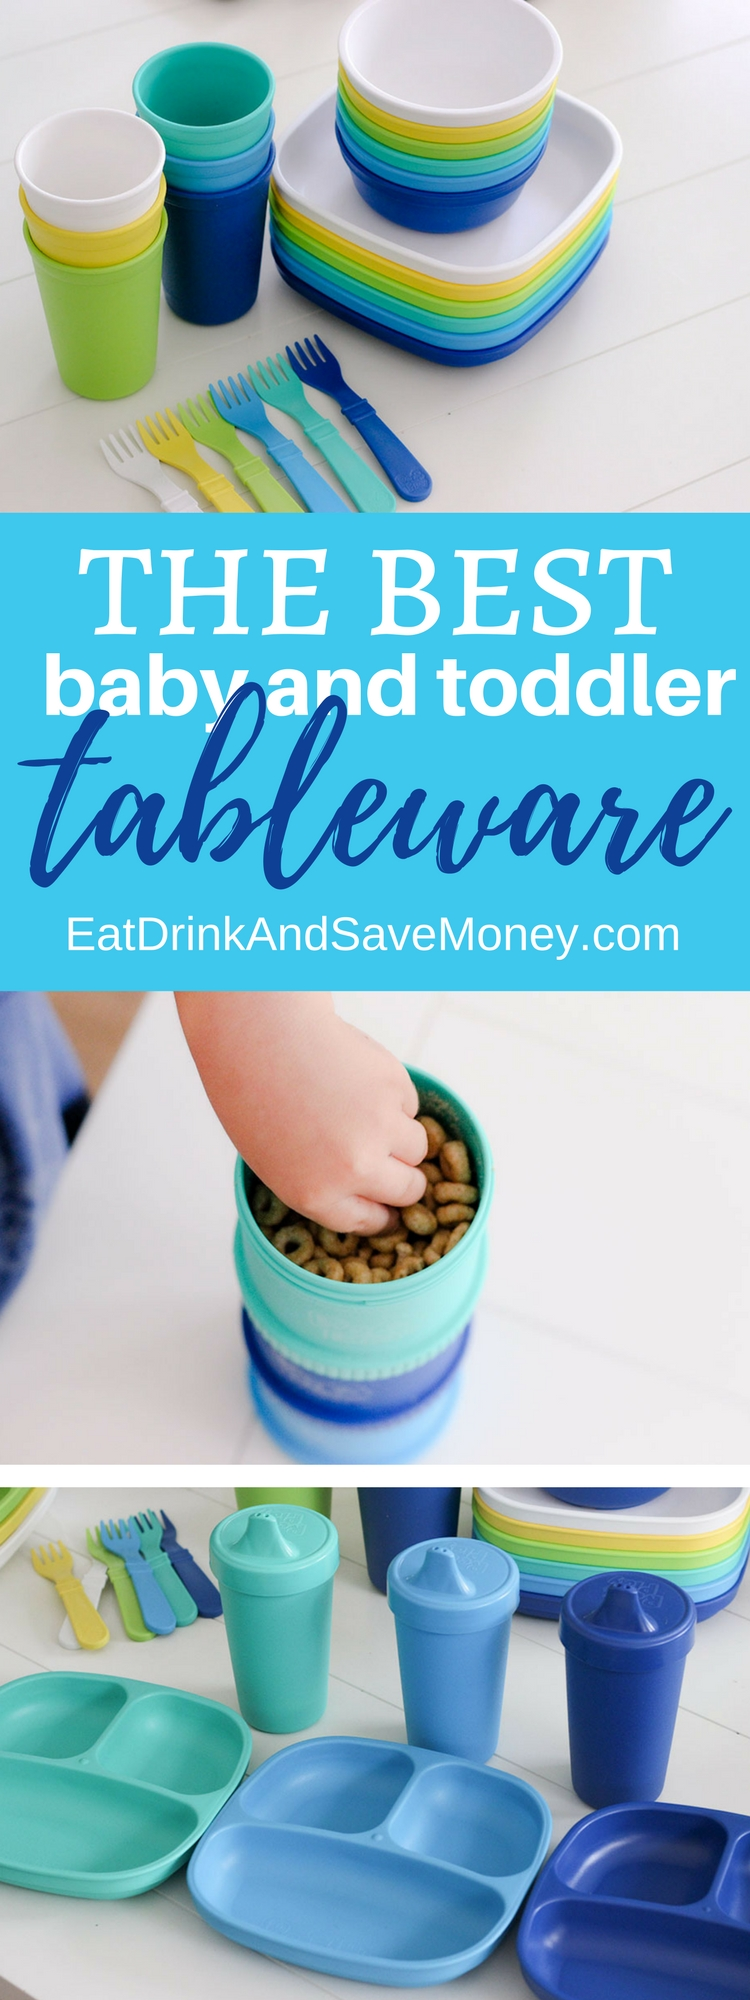 The best baby and toddler tableware- replay recycled. feed babies feed toddlers on eco friendly plates, cups and bowls.